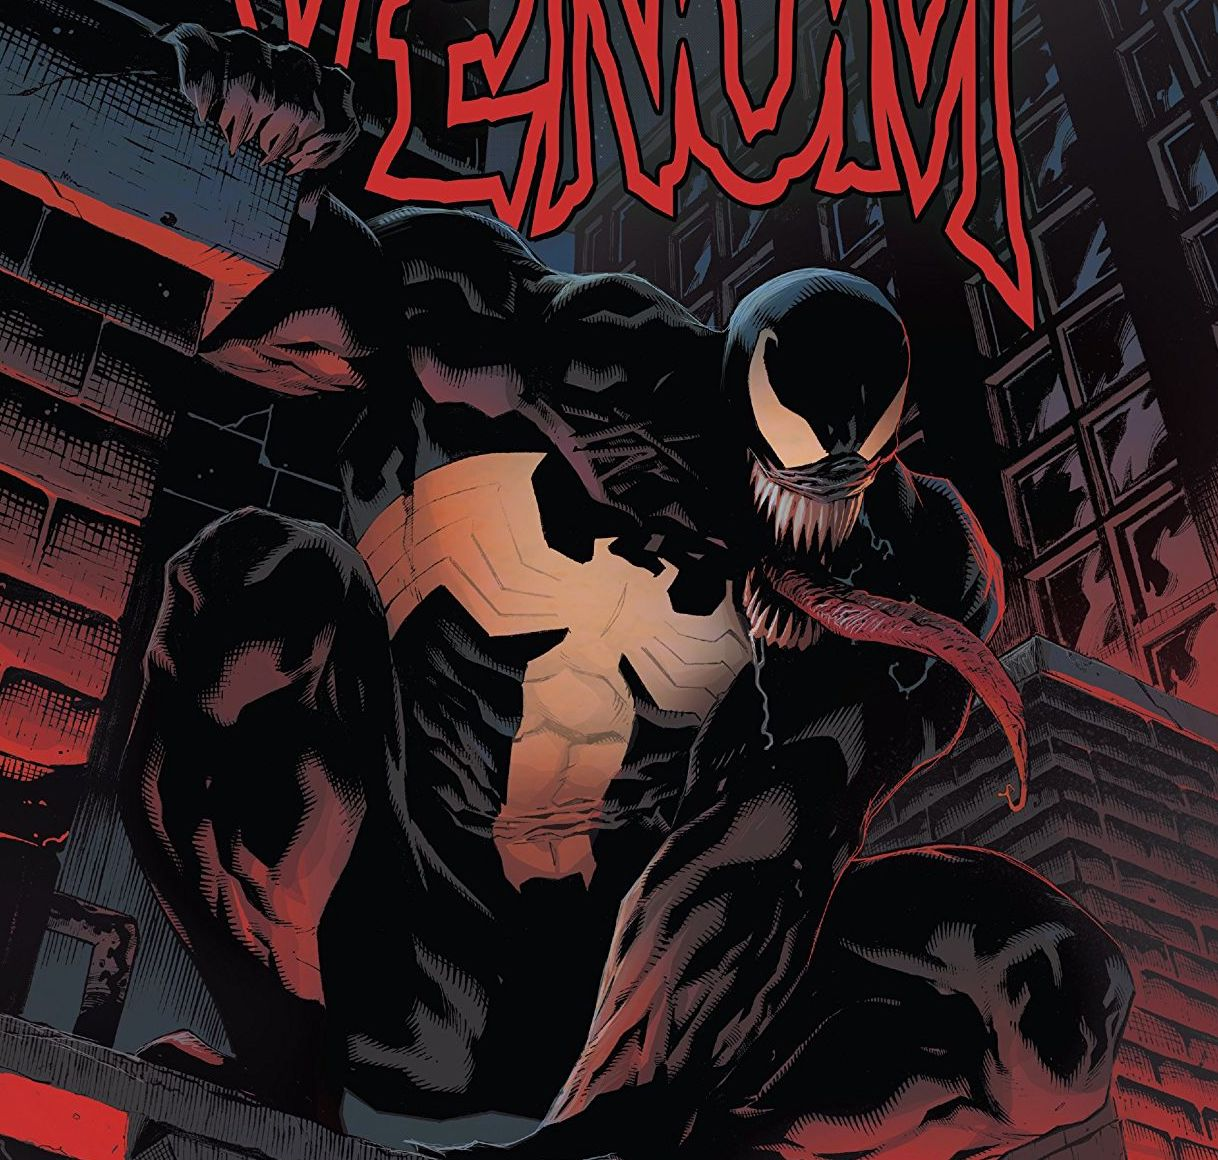 Eddie and the Symbiote must come to grips with some major secrets.